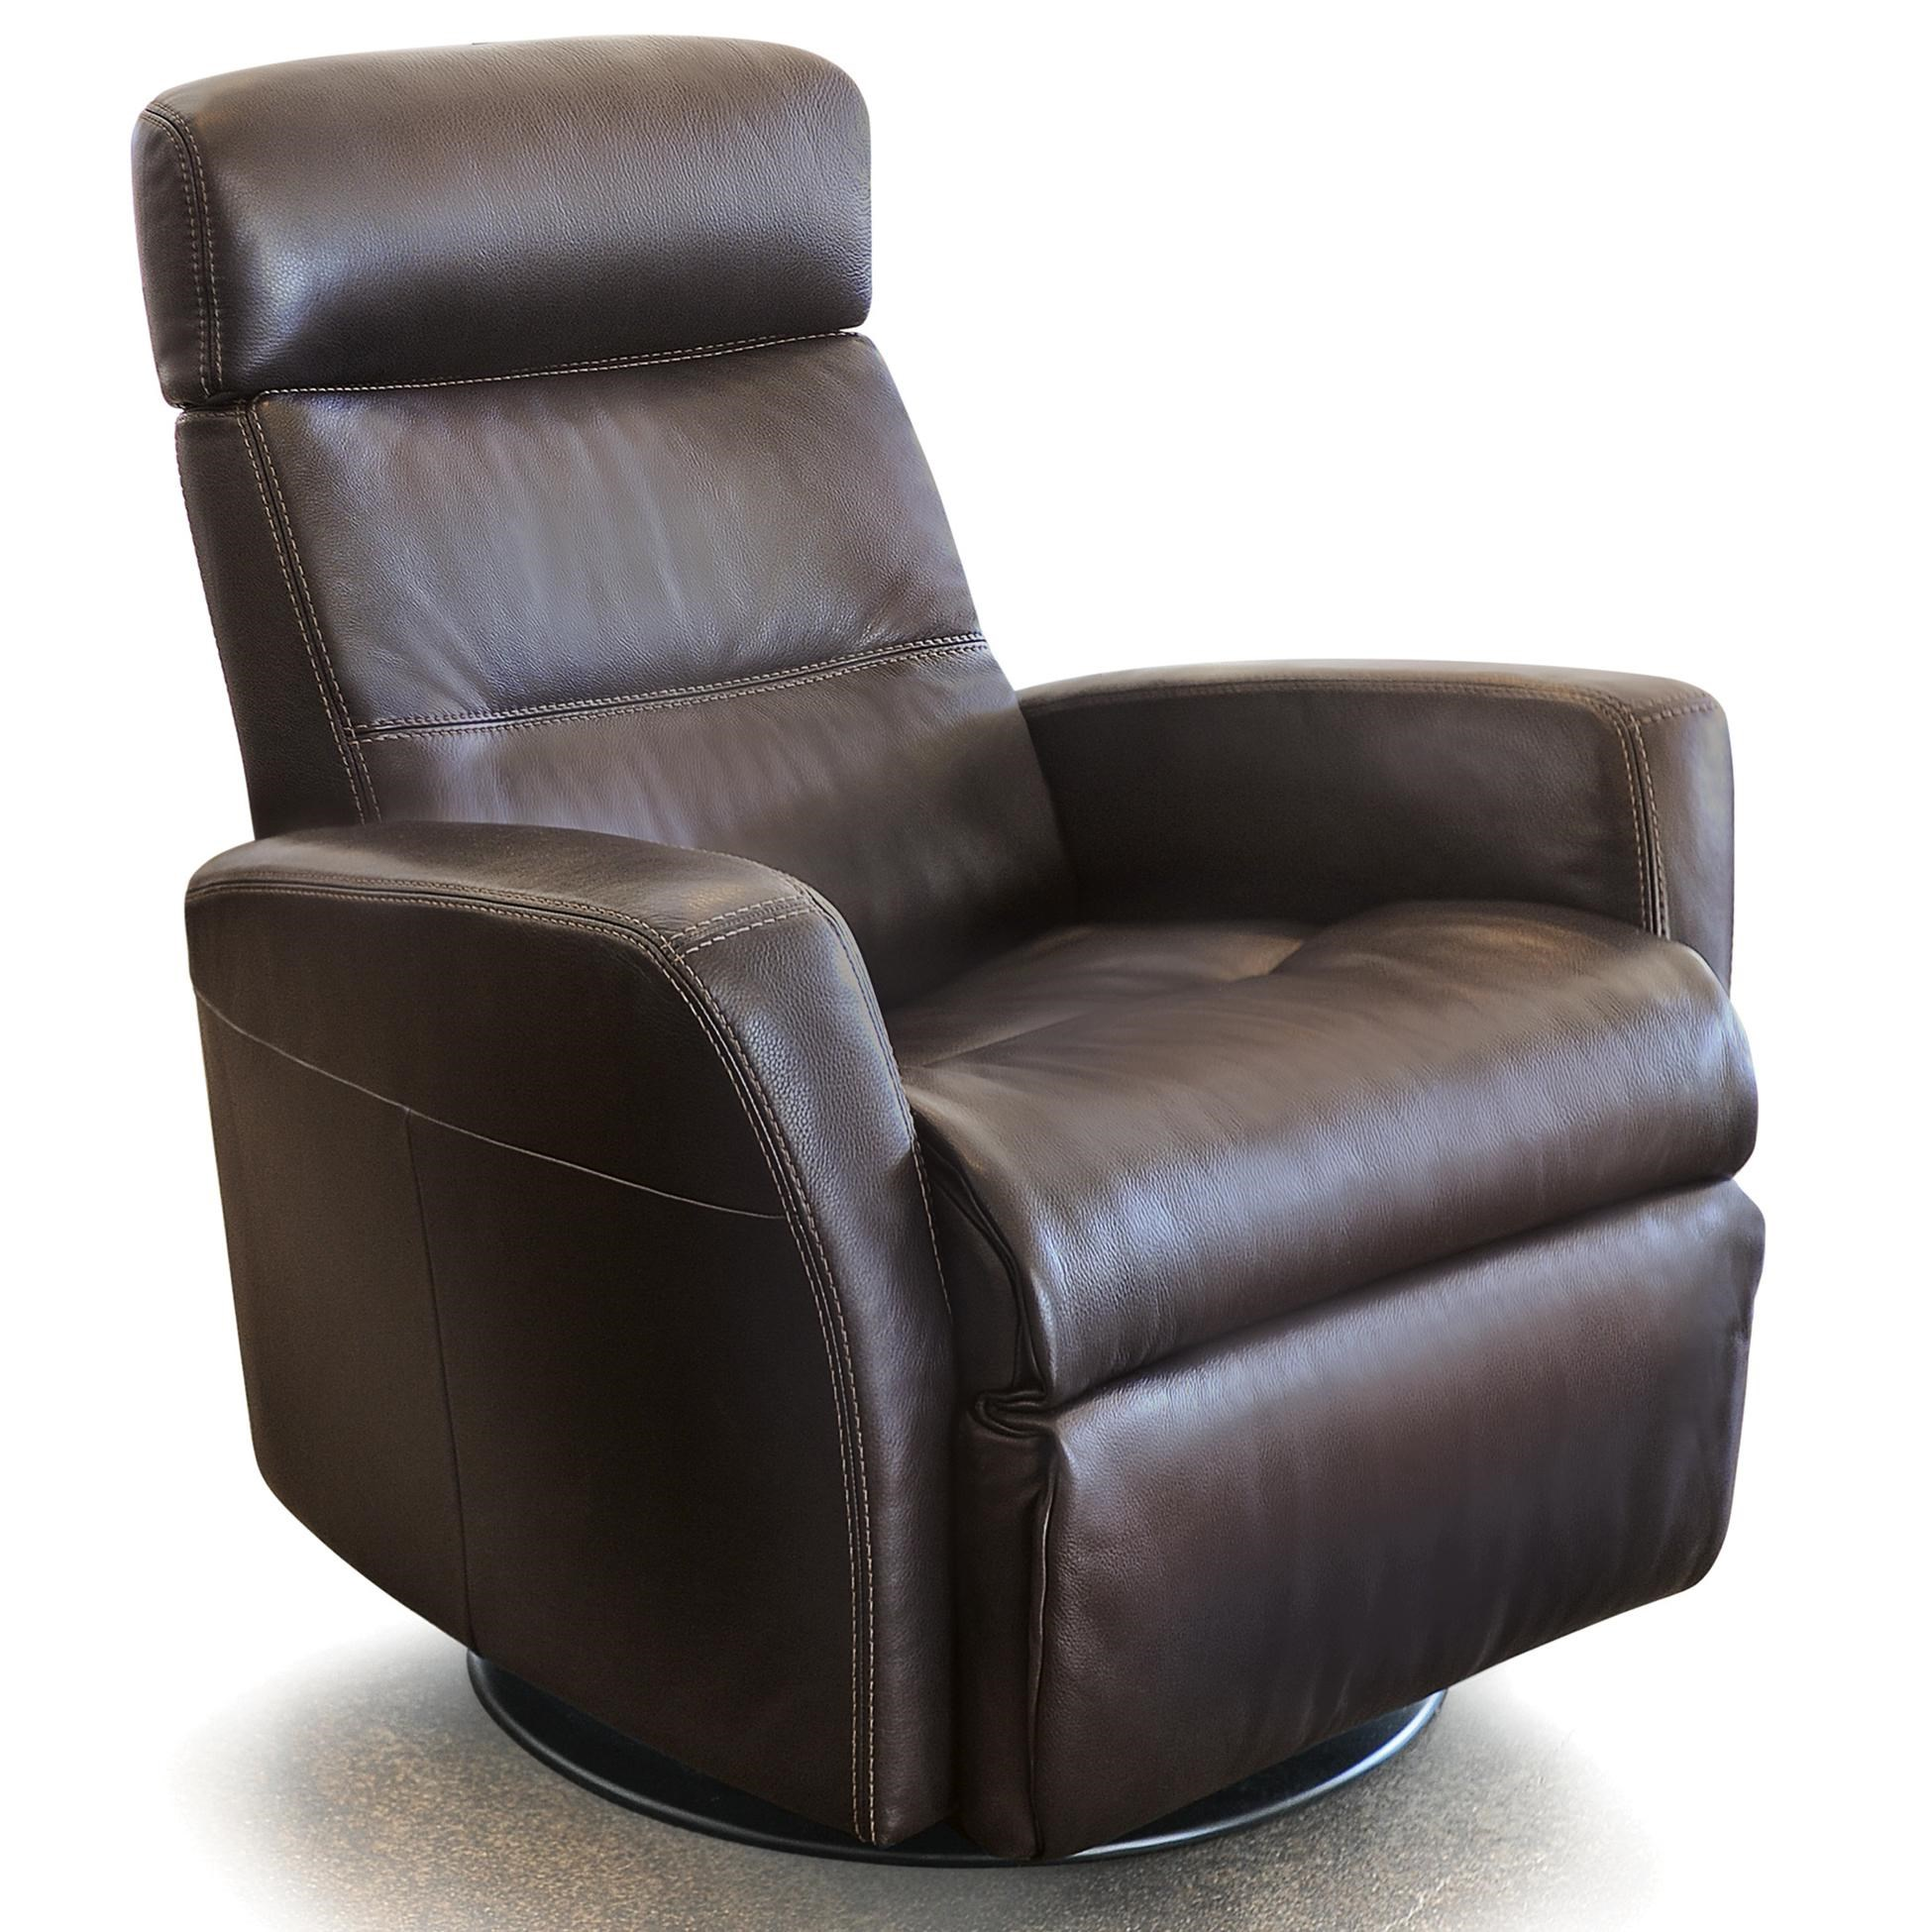 Awesome IMG Norway Recliners Modern Divani Recliner Relaxer With Swivel Base